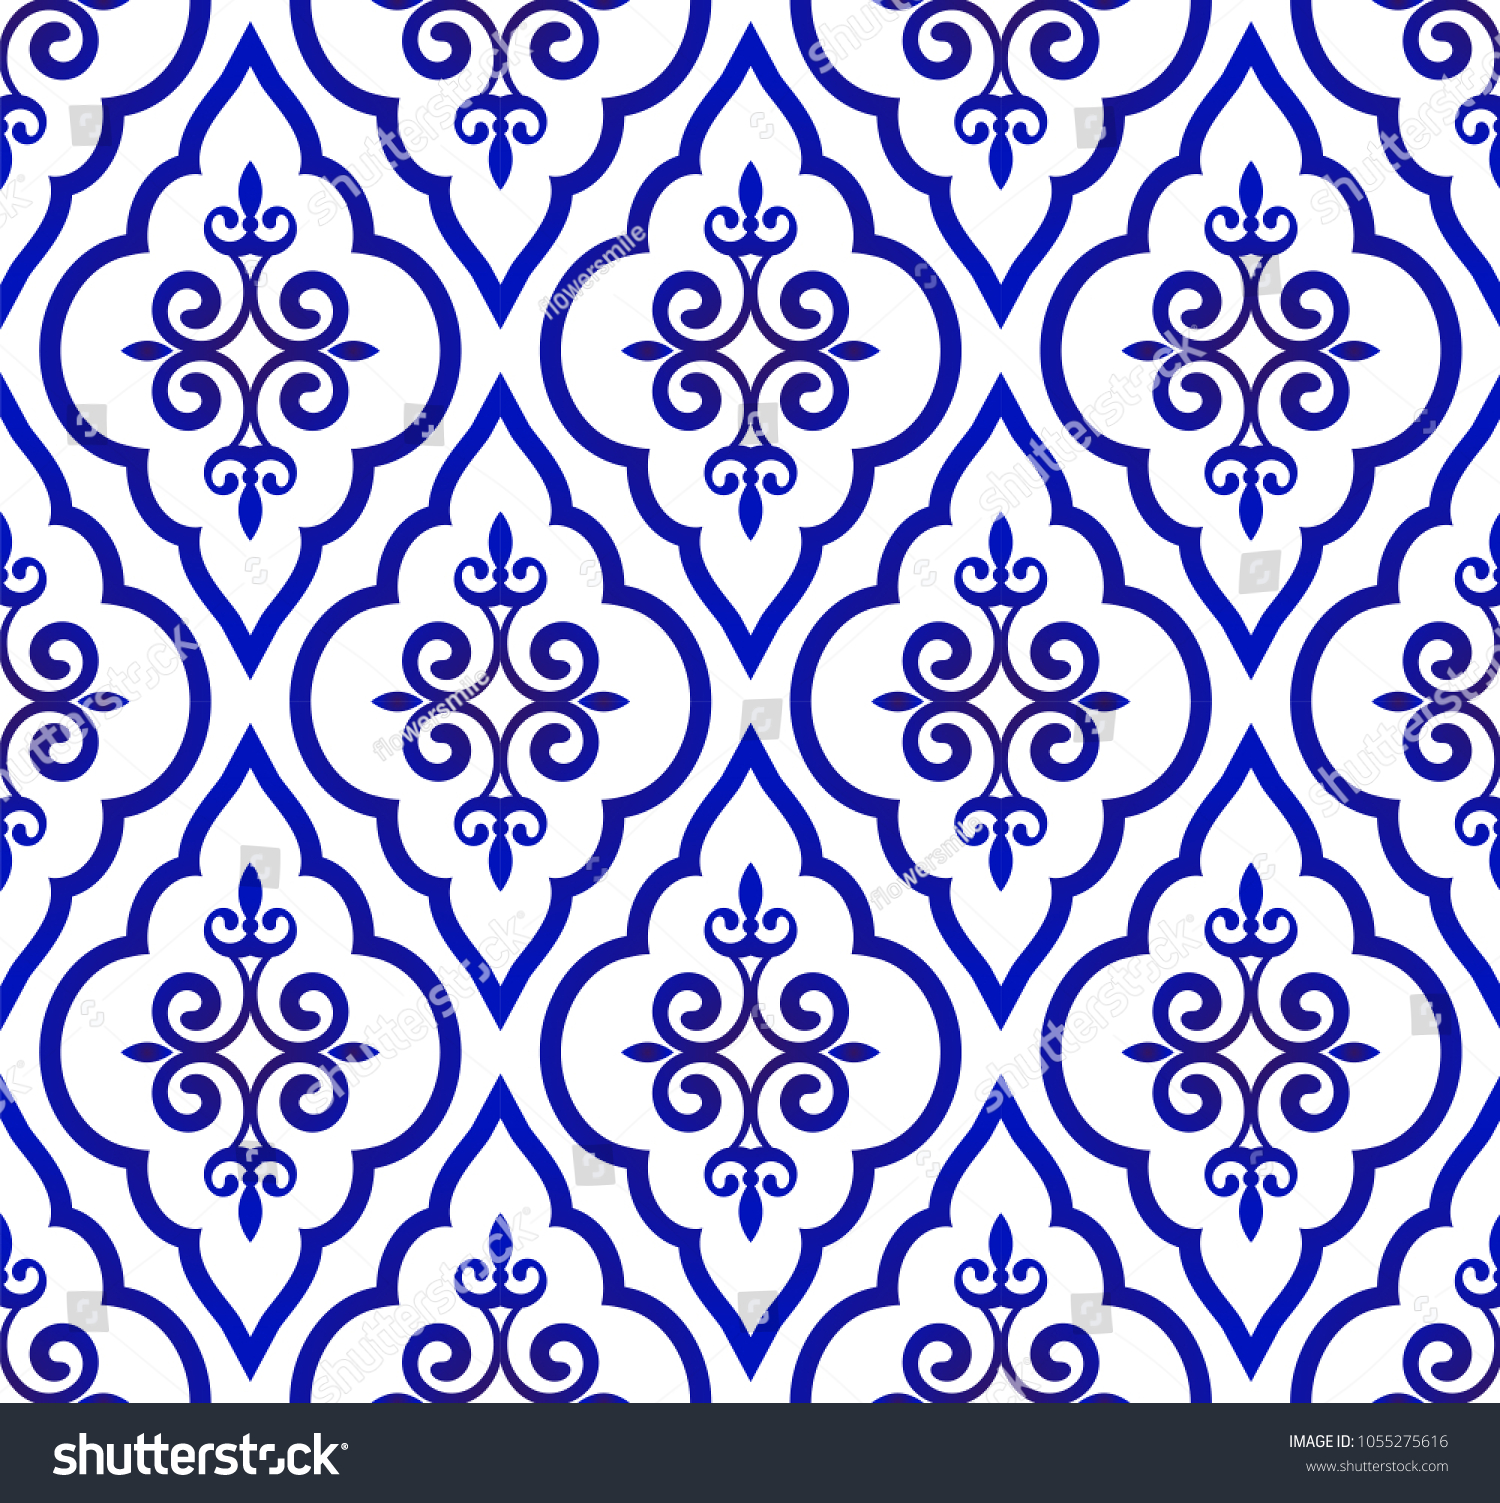 Blue White Royal Pattern Seamless Background Image Vectorielle De